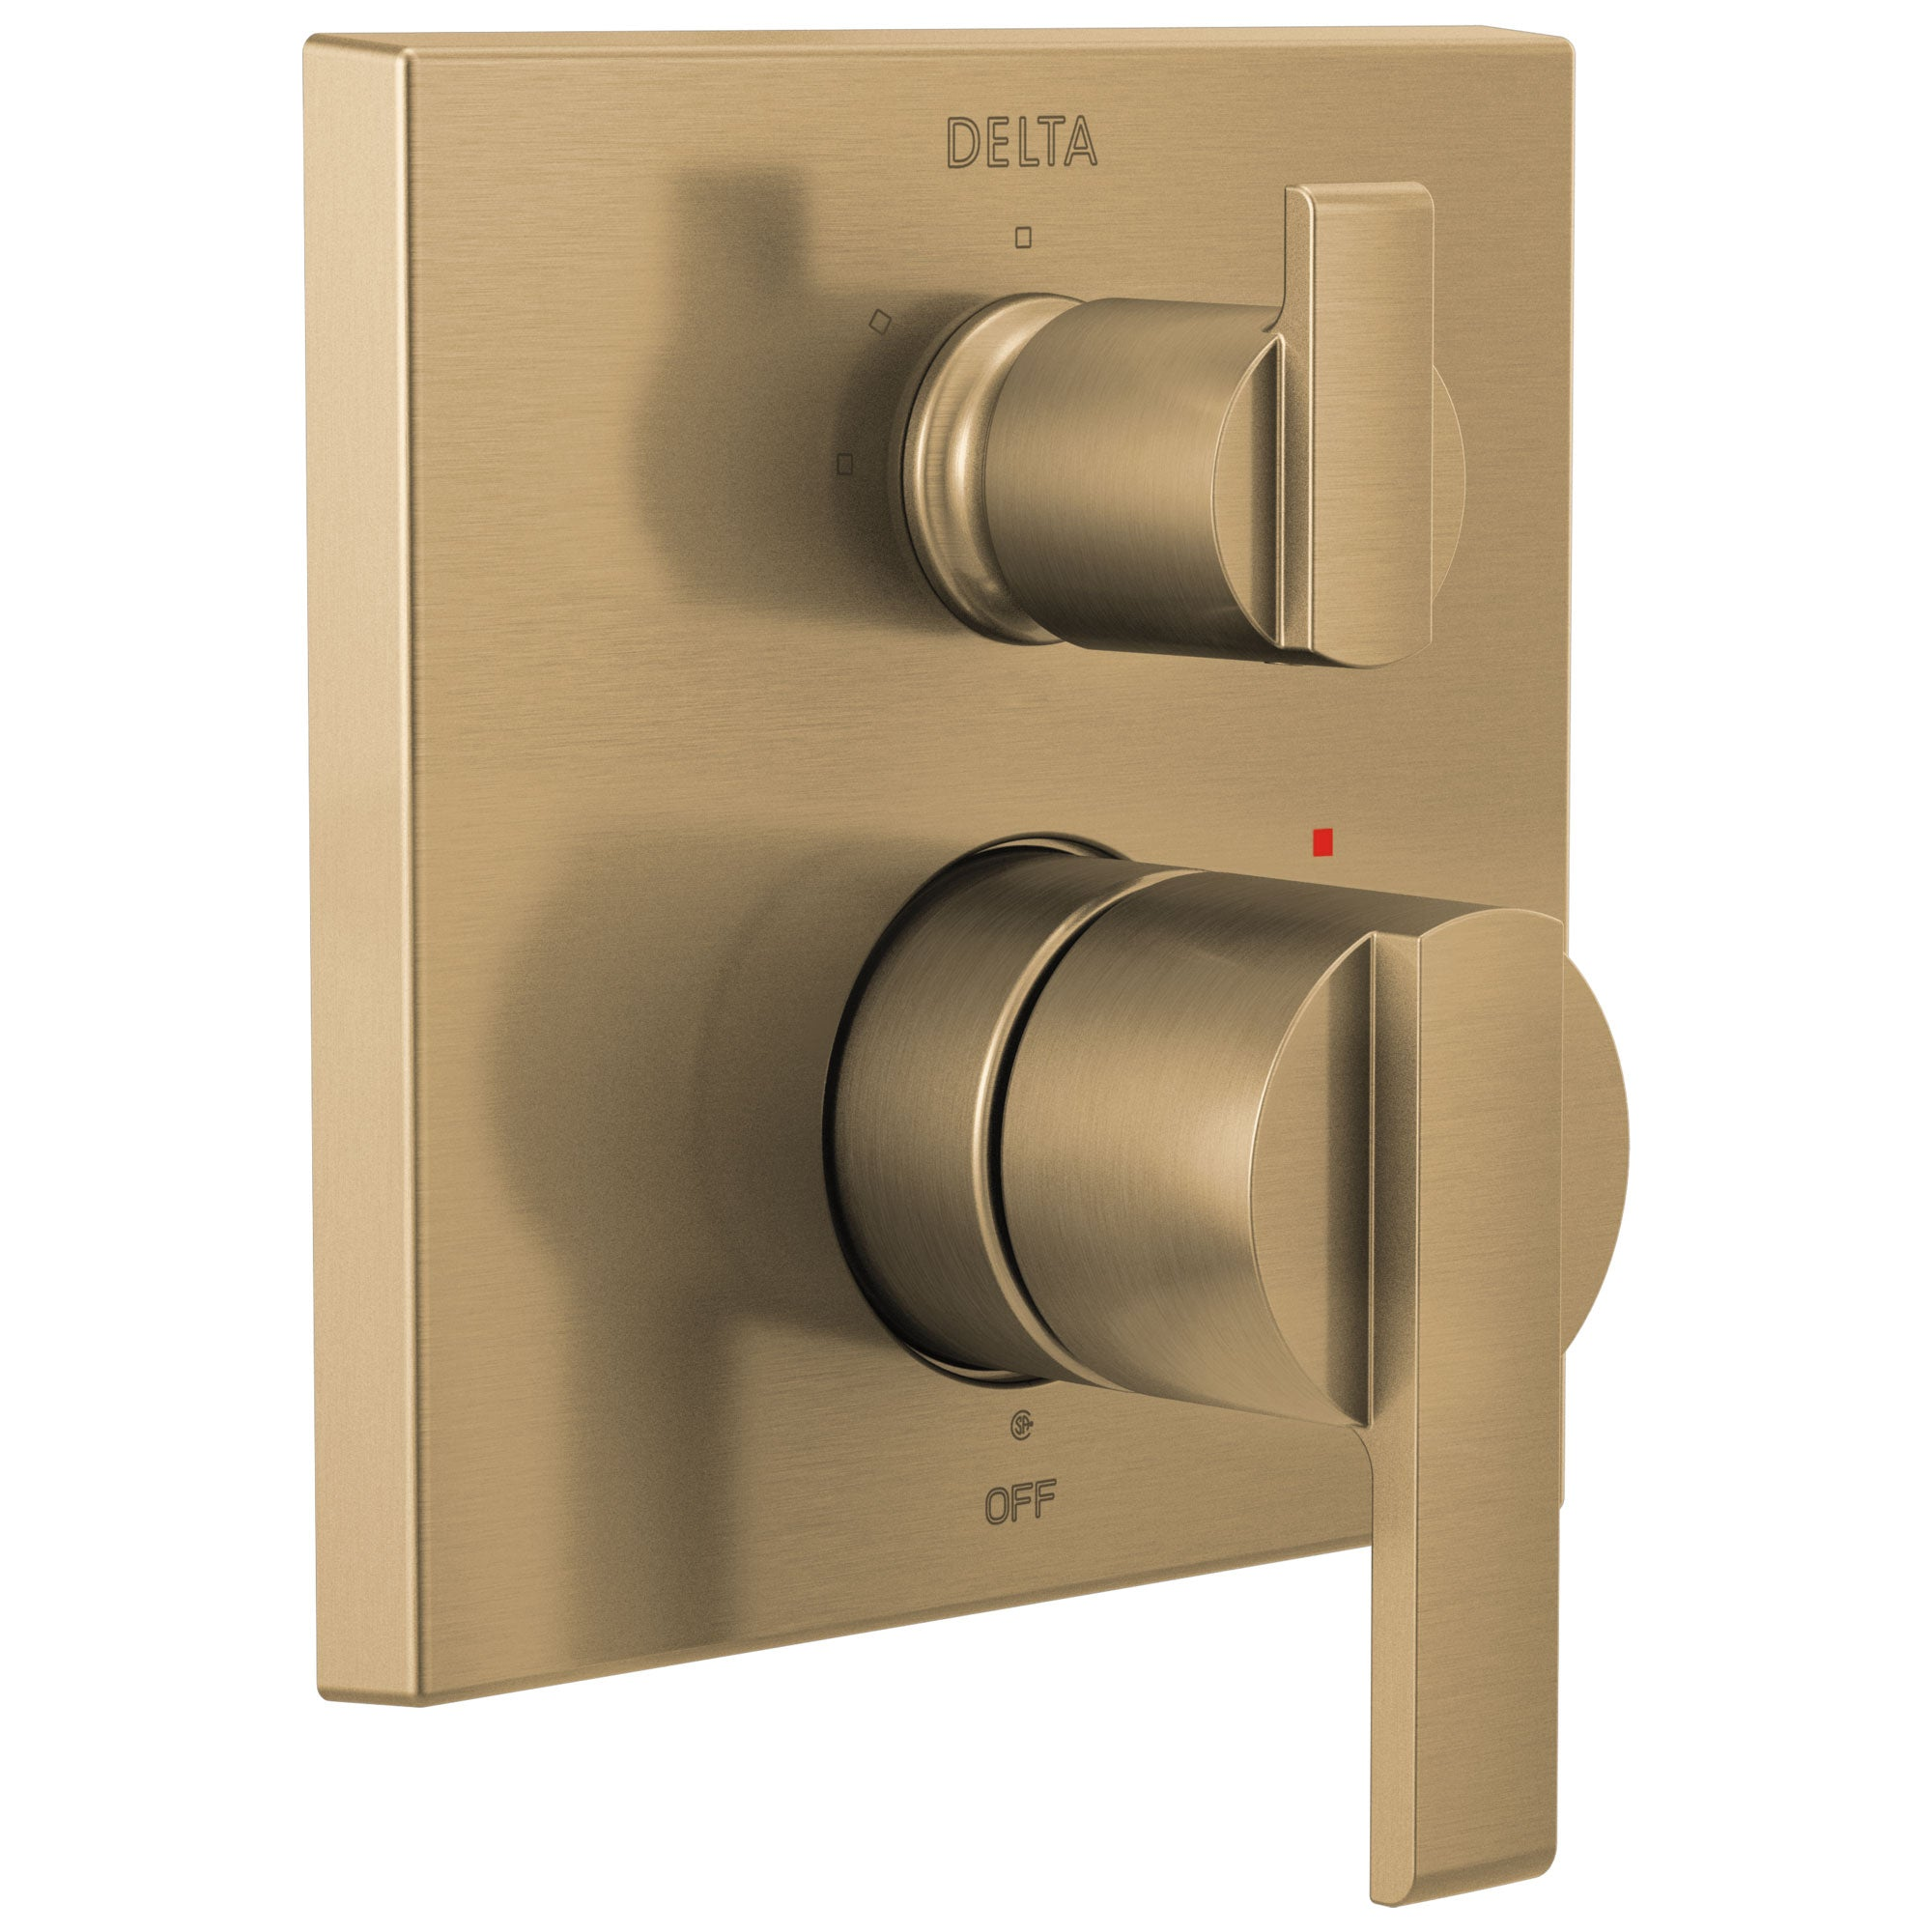 Delta Ara Champagne Bronze Finish Angular Modern Monitor 14 Series Shower Control Trim Kit with 3-Setting Integrated Diverter (Requires Valve) DT24867CZ